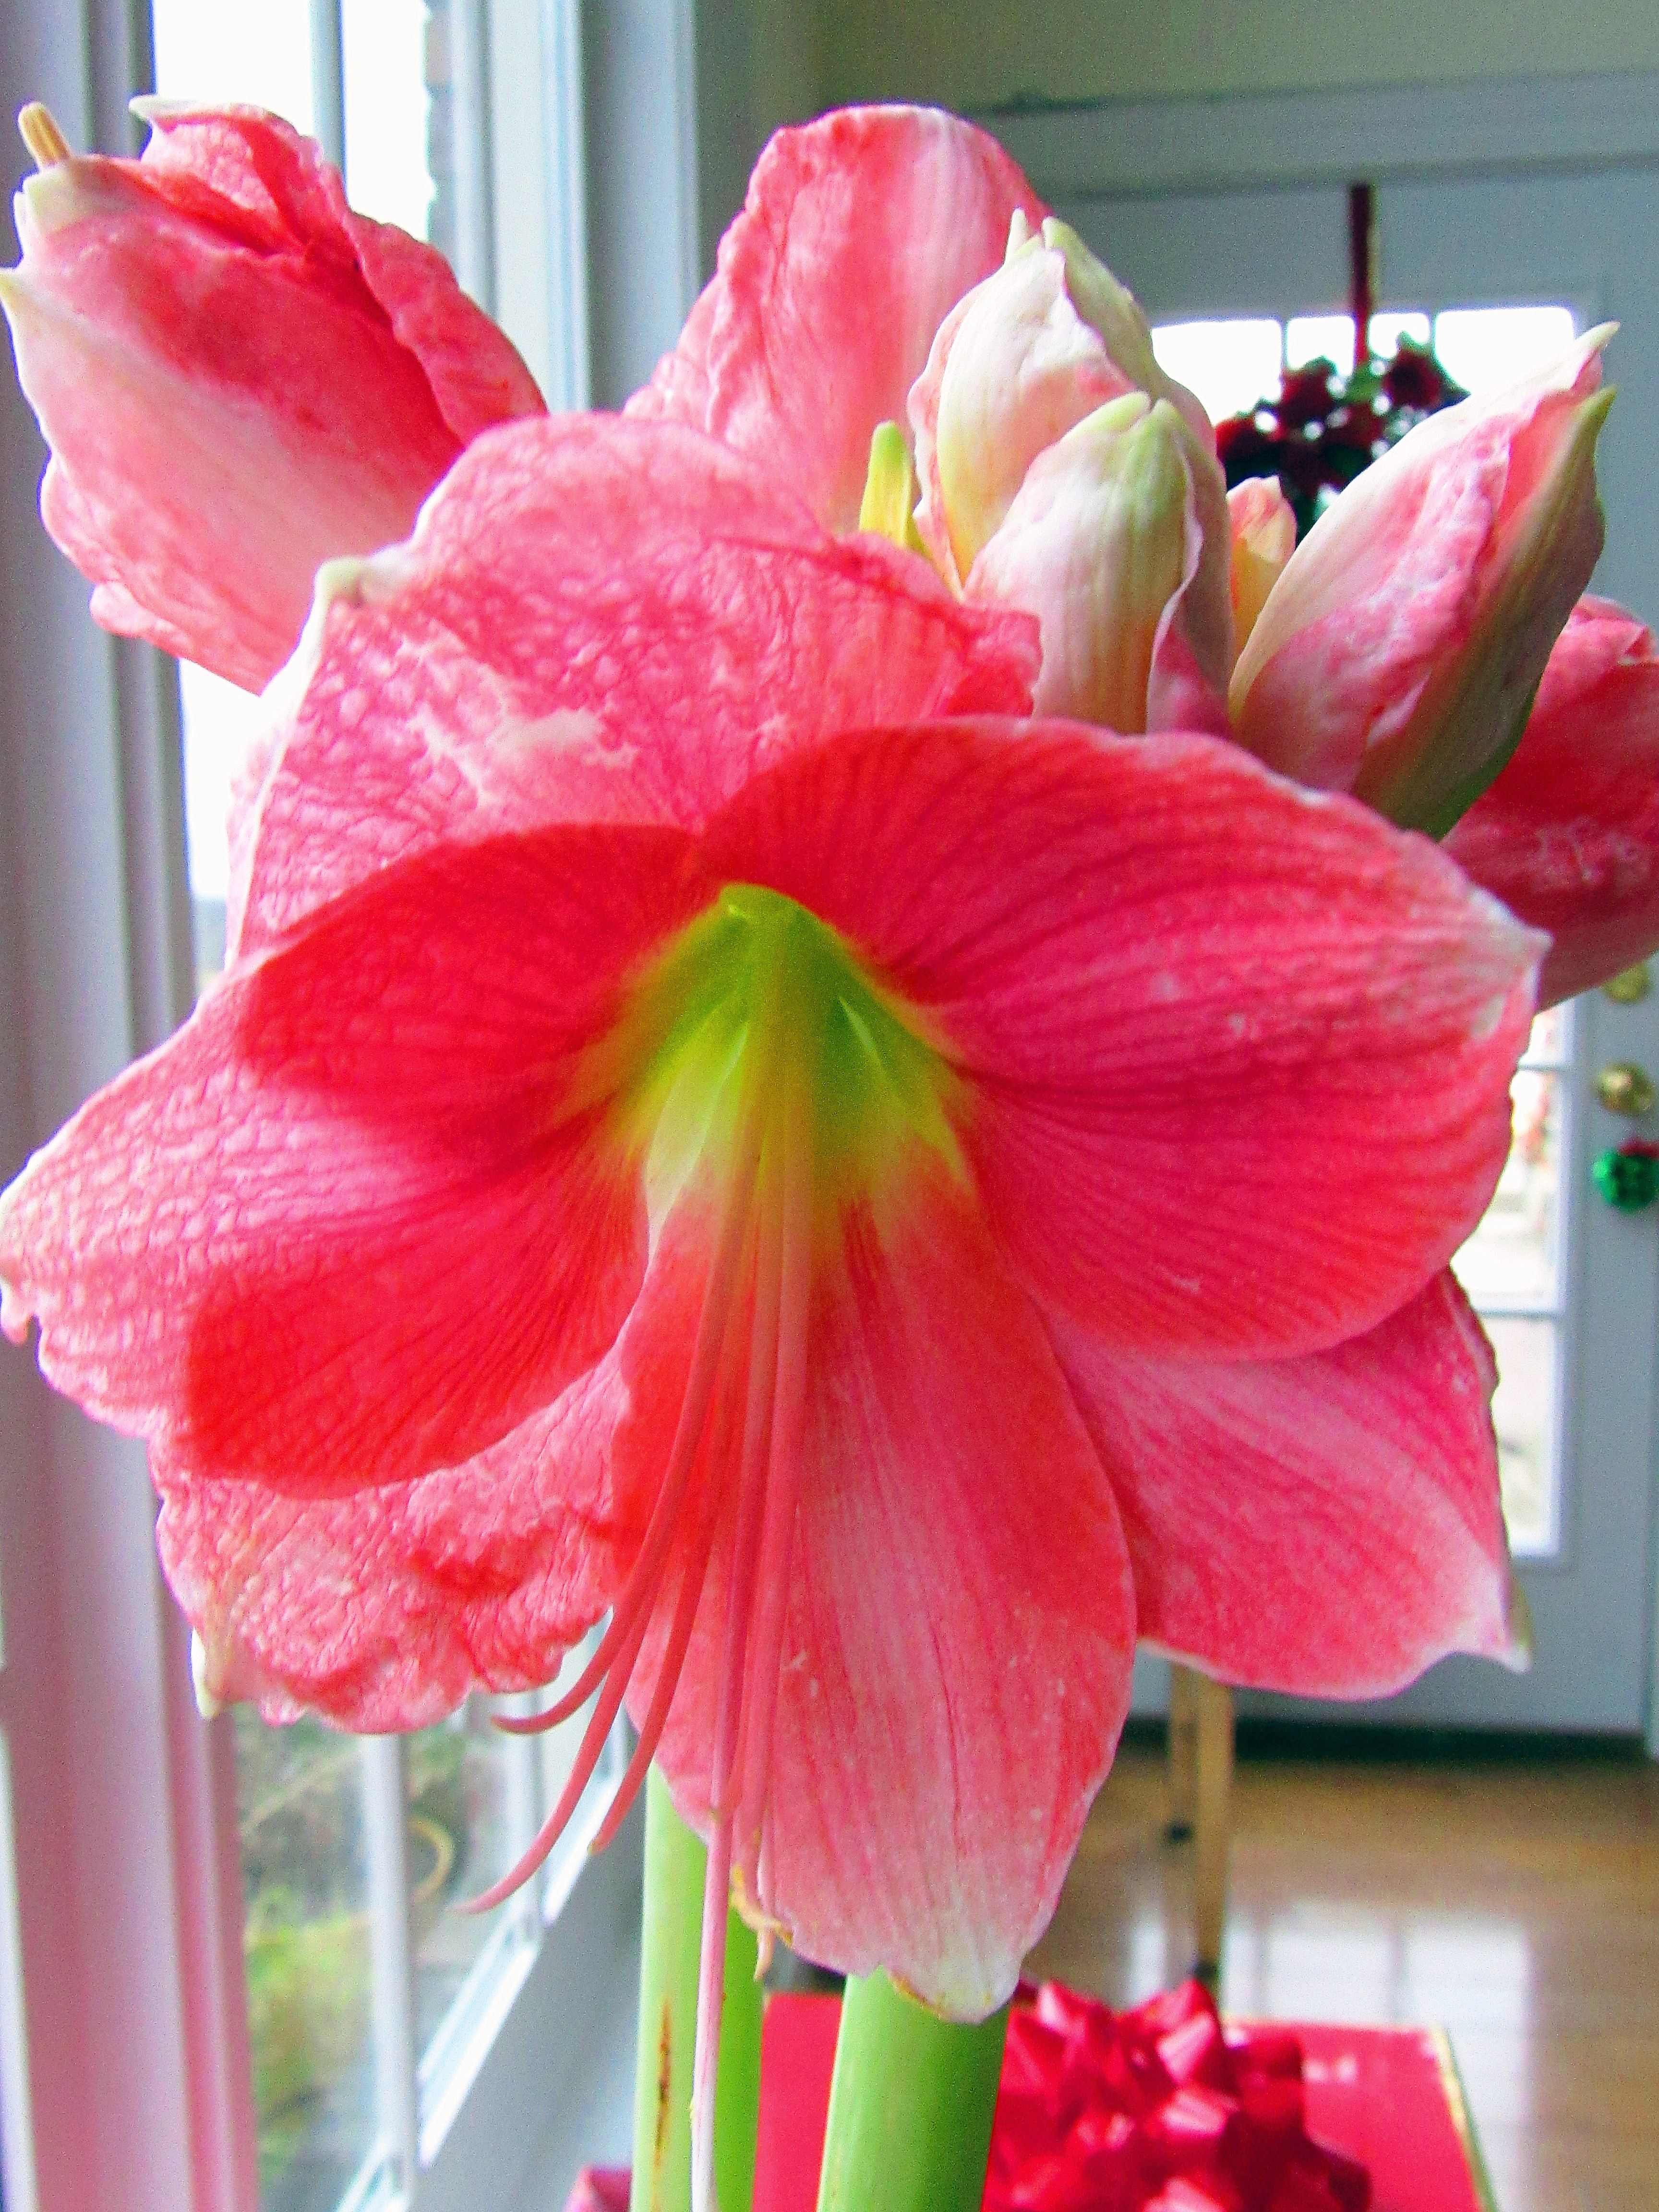 Susan Amaryllis With 8 Buds On 2 Stems The Bulb Was 7 At Walmart Amaryllis Flowers Amaryllis Day Lilies